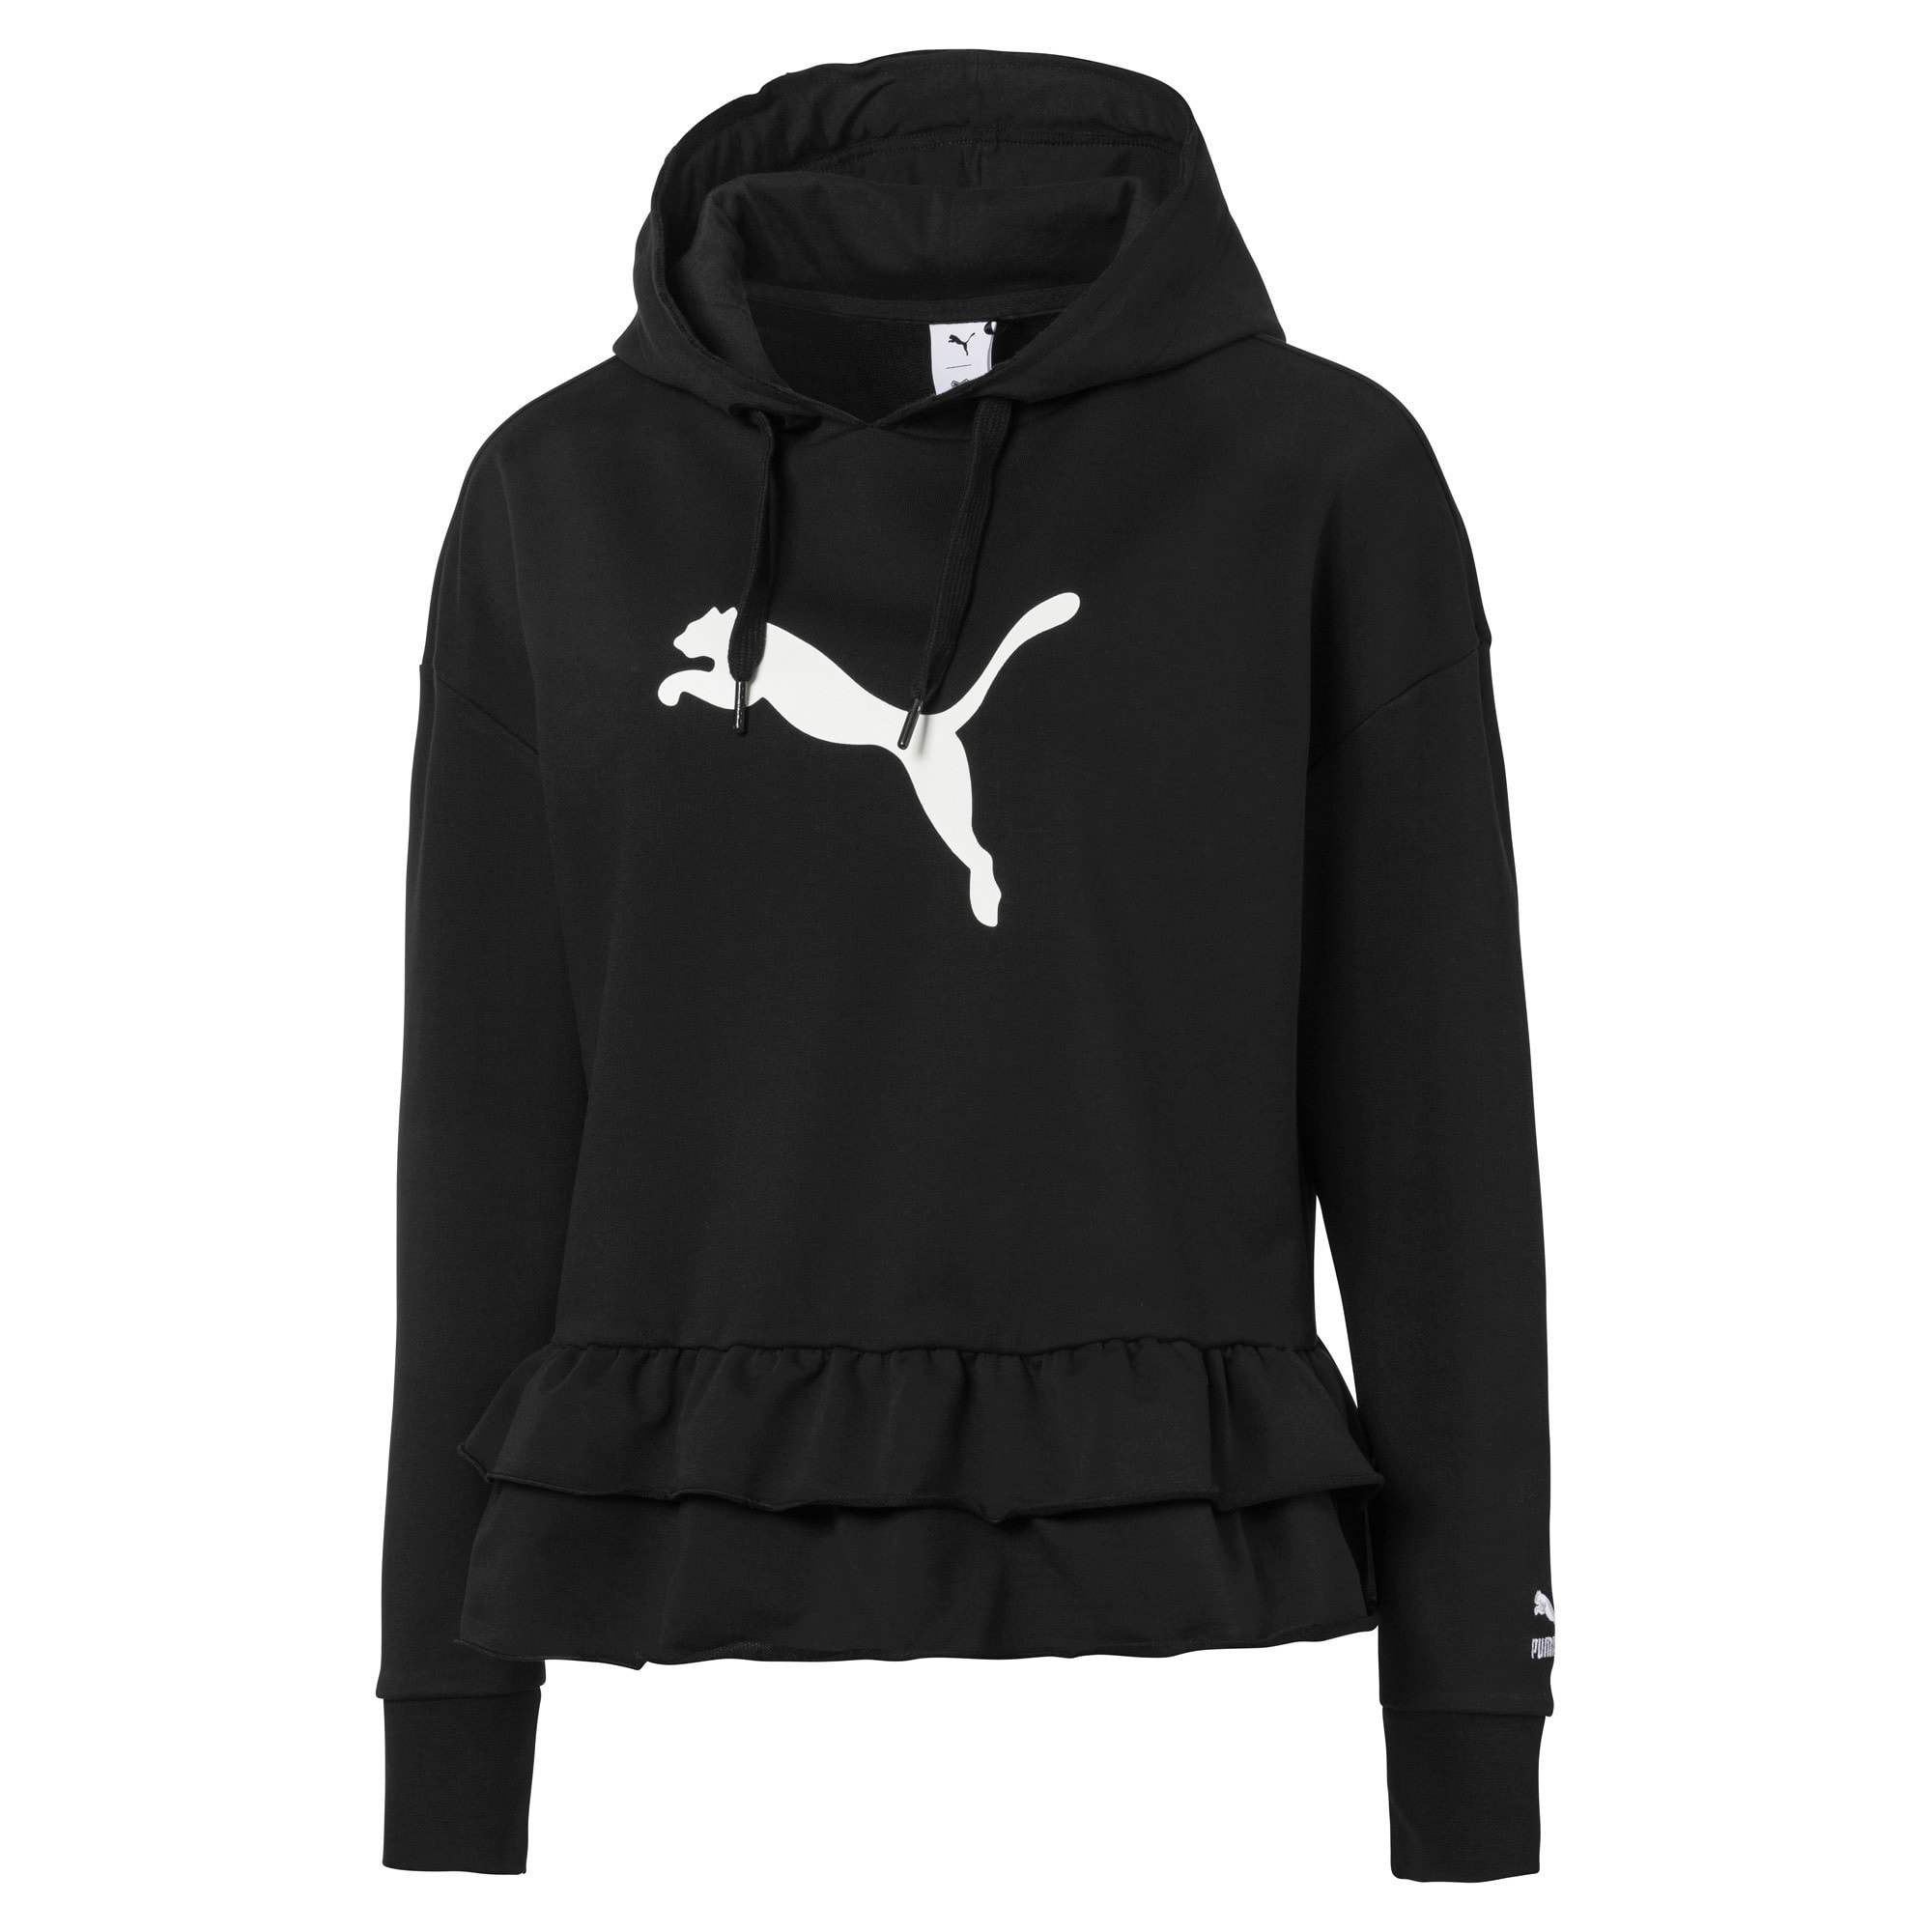 Thumbnail 1 of PUMA x TYAKASHA Women's Hoodie, Cotton Black, medium